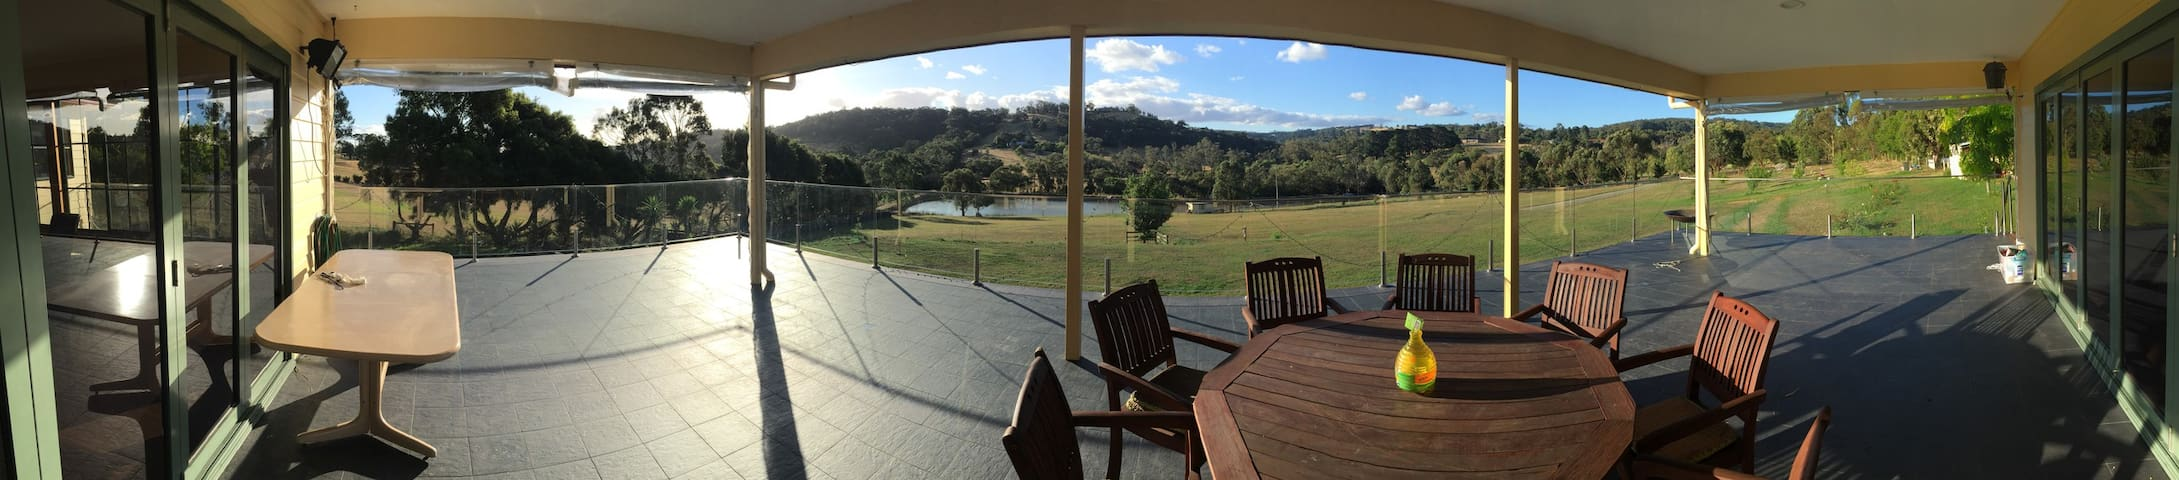 Peaceful farm stay with gorgeous views - Pakenham - Lejlighed